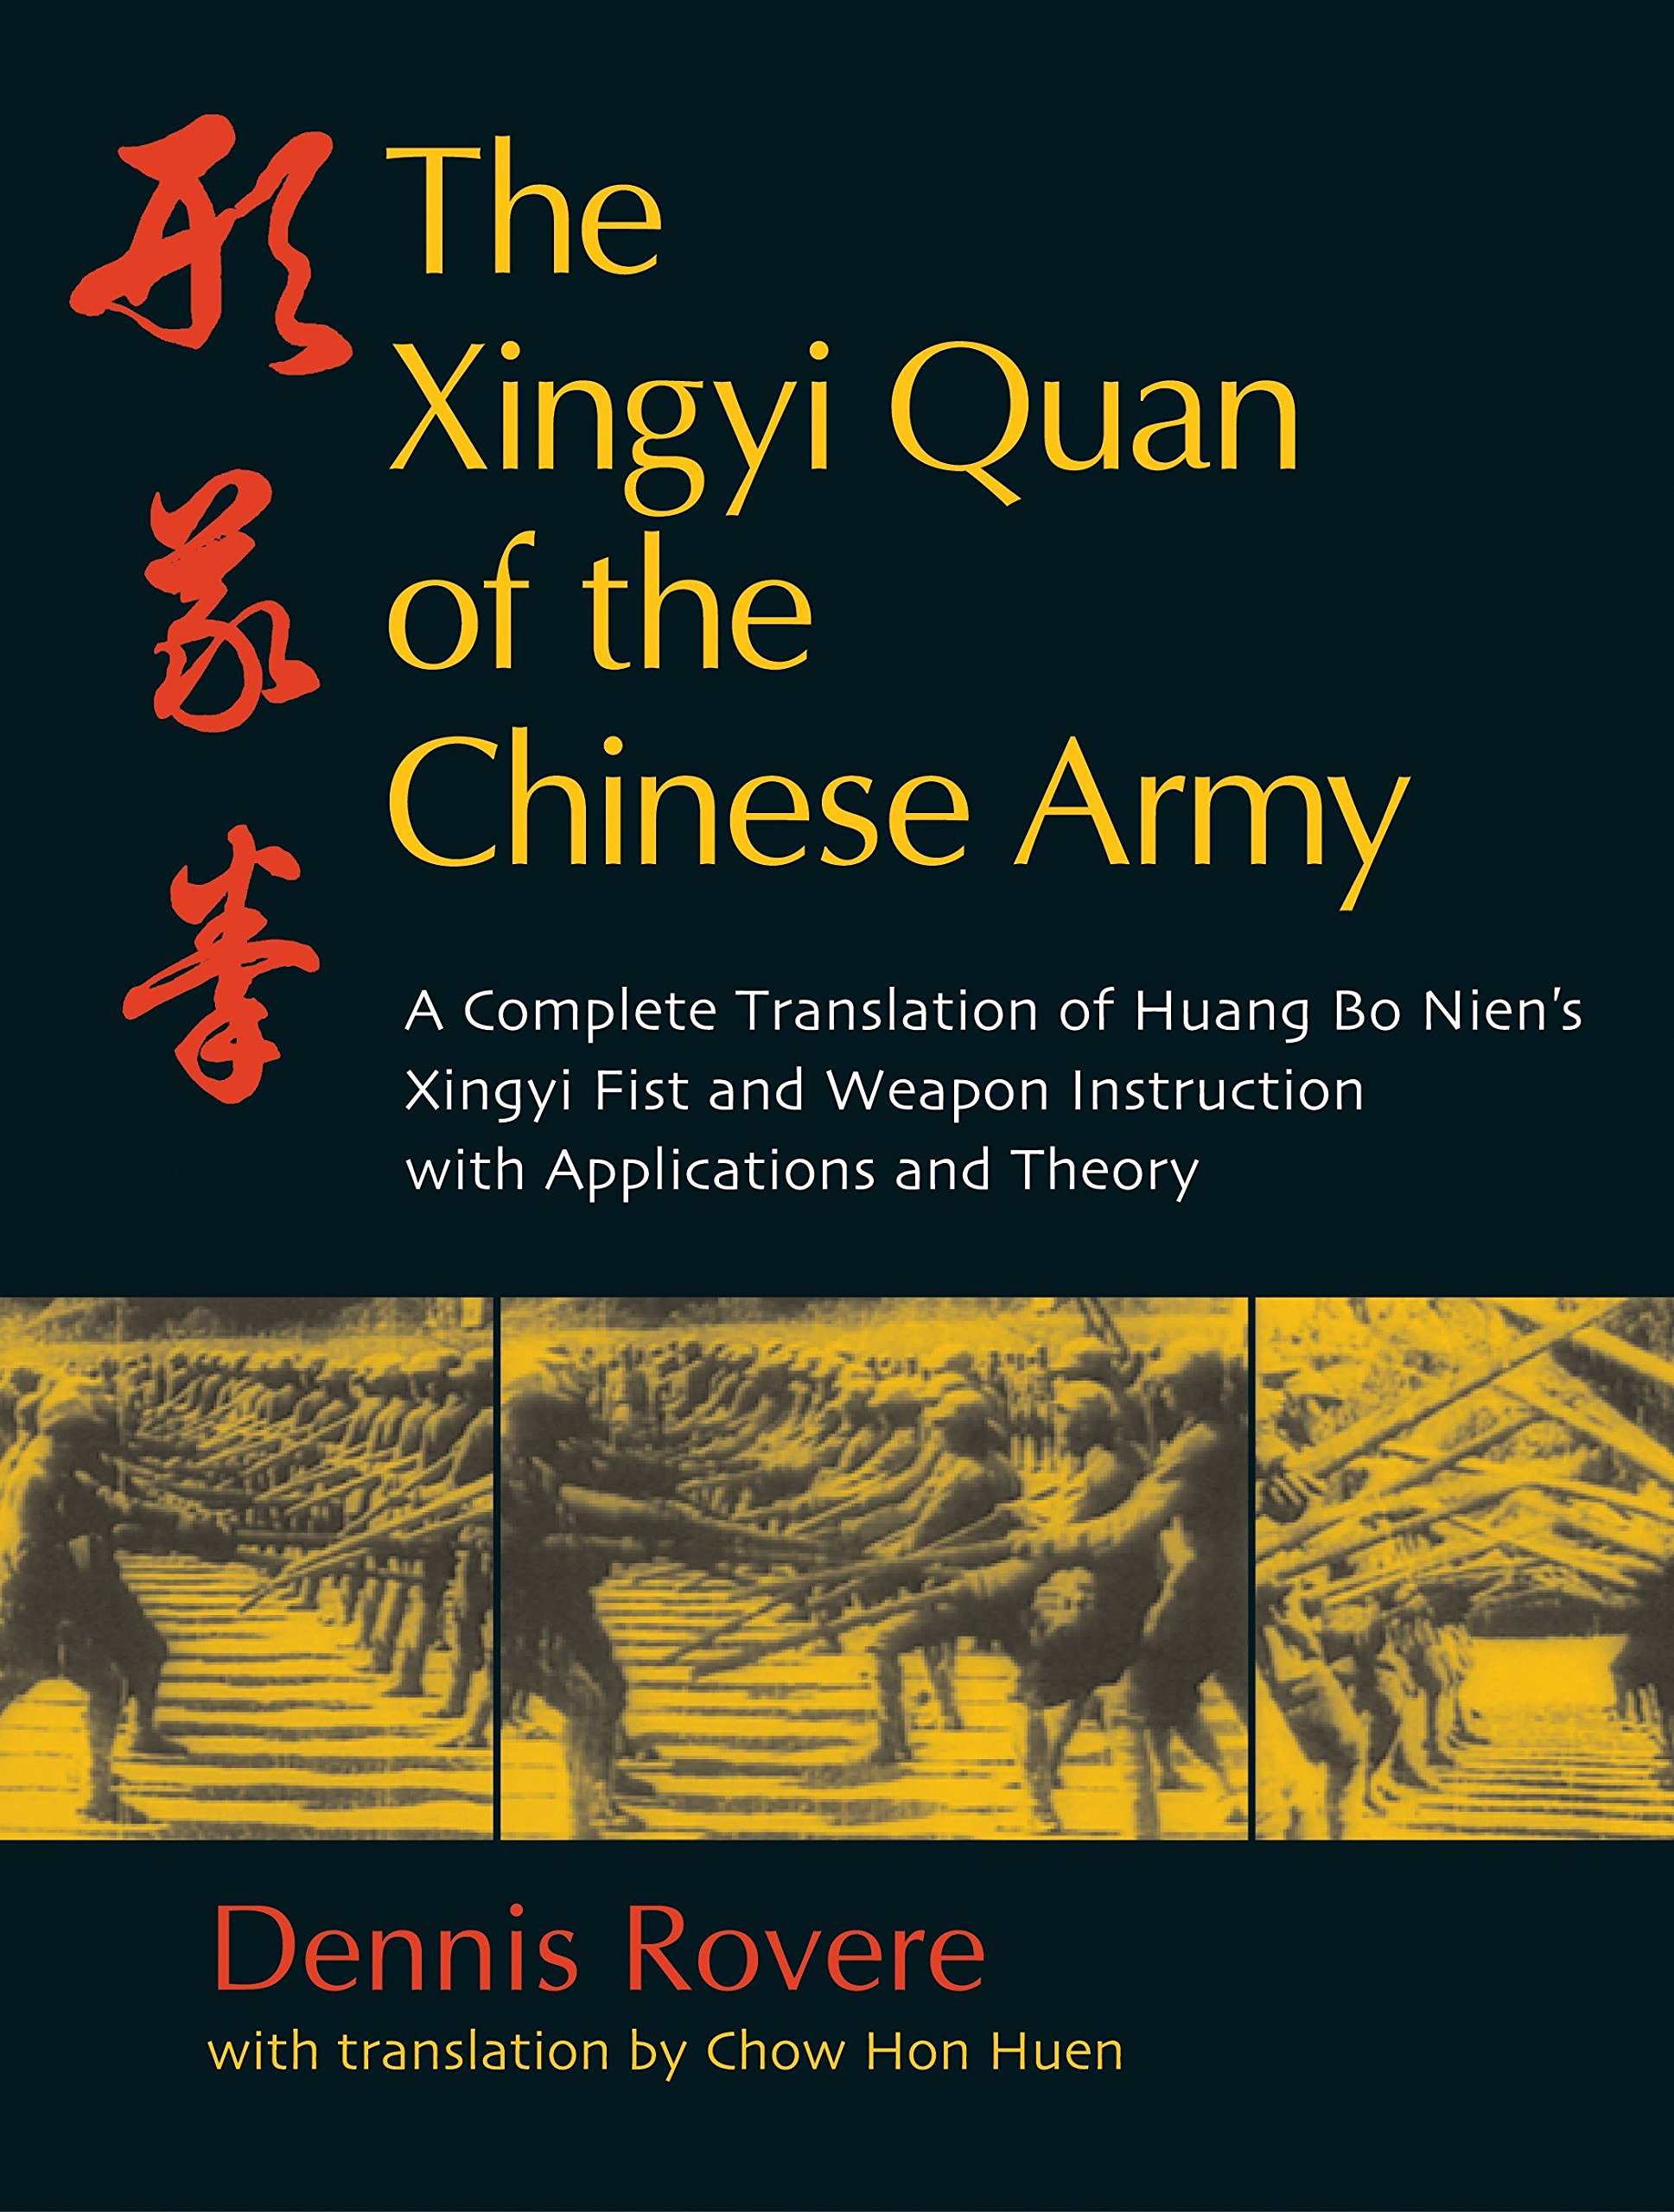 The Xingyi Quan of the Chinese Army: Huang Bo Nien's Xingyi Fist and Weapon  Instruction: Dennis Rovere: 9781583942574: Amazon.com: Books